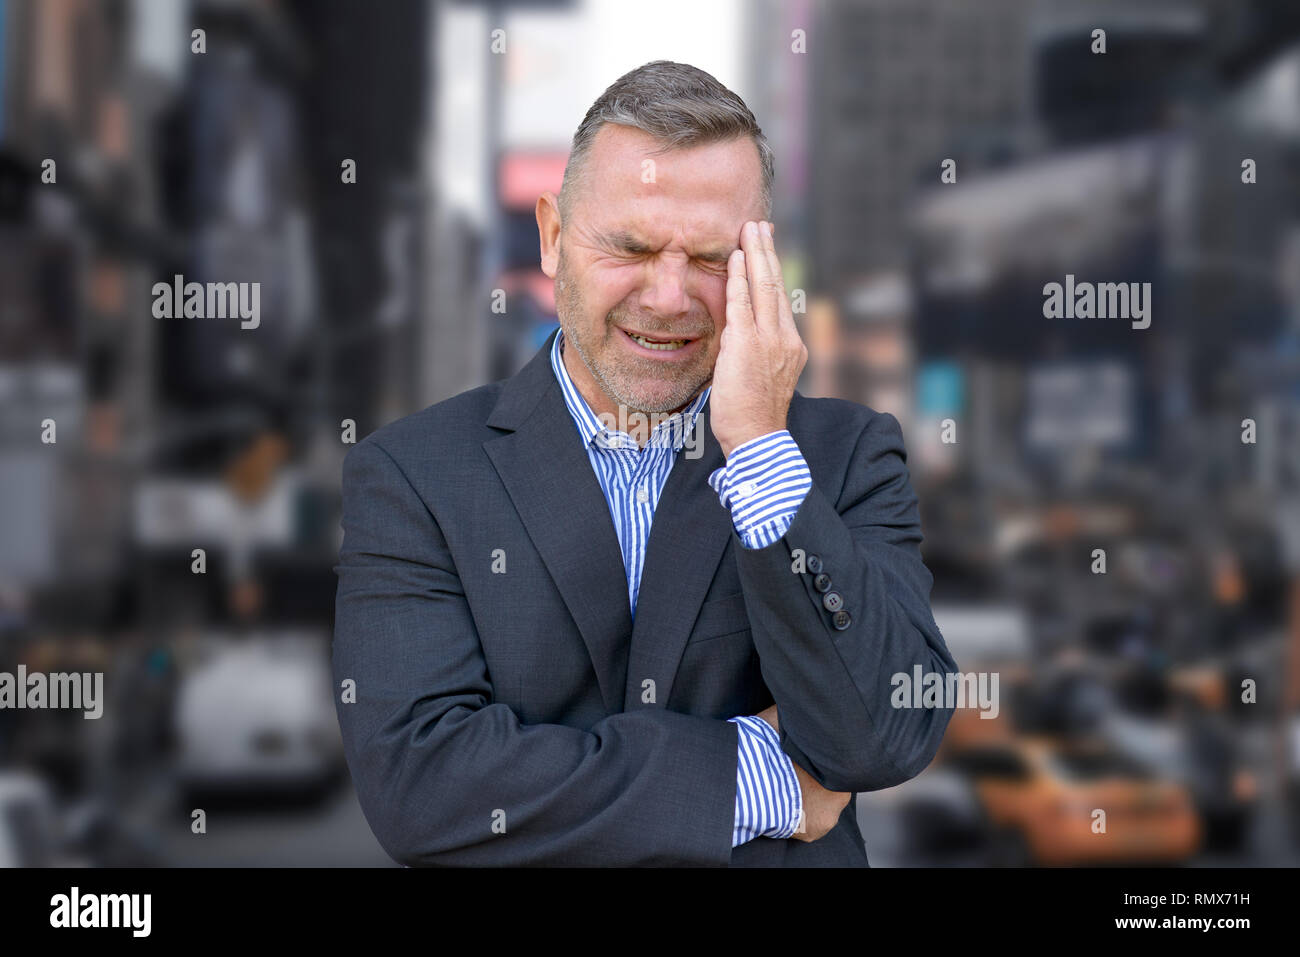 Stressed businessman, or suffering from a headache, standing with his hand to his temple grimacing against downtown of a big city - Stock Image